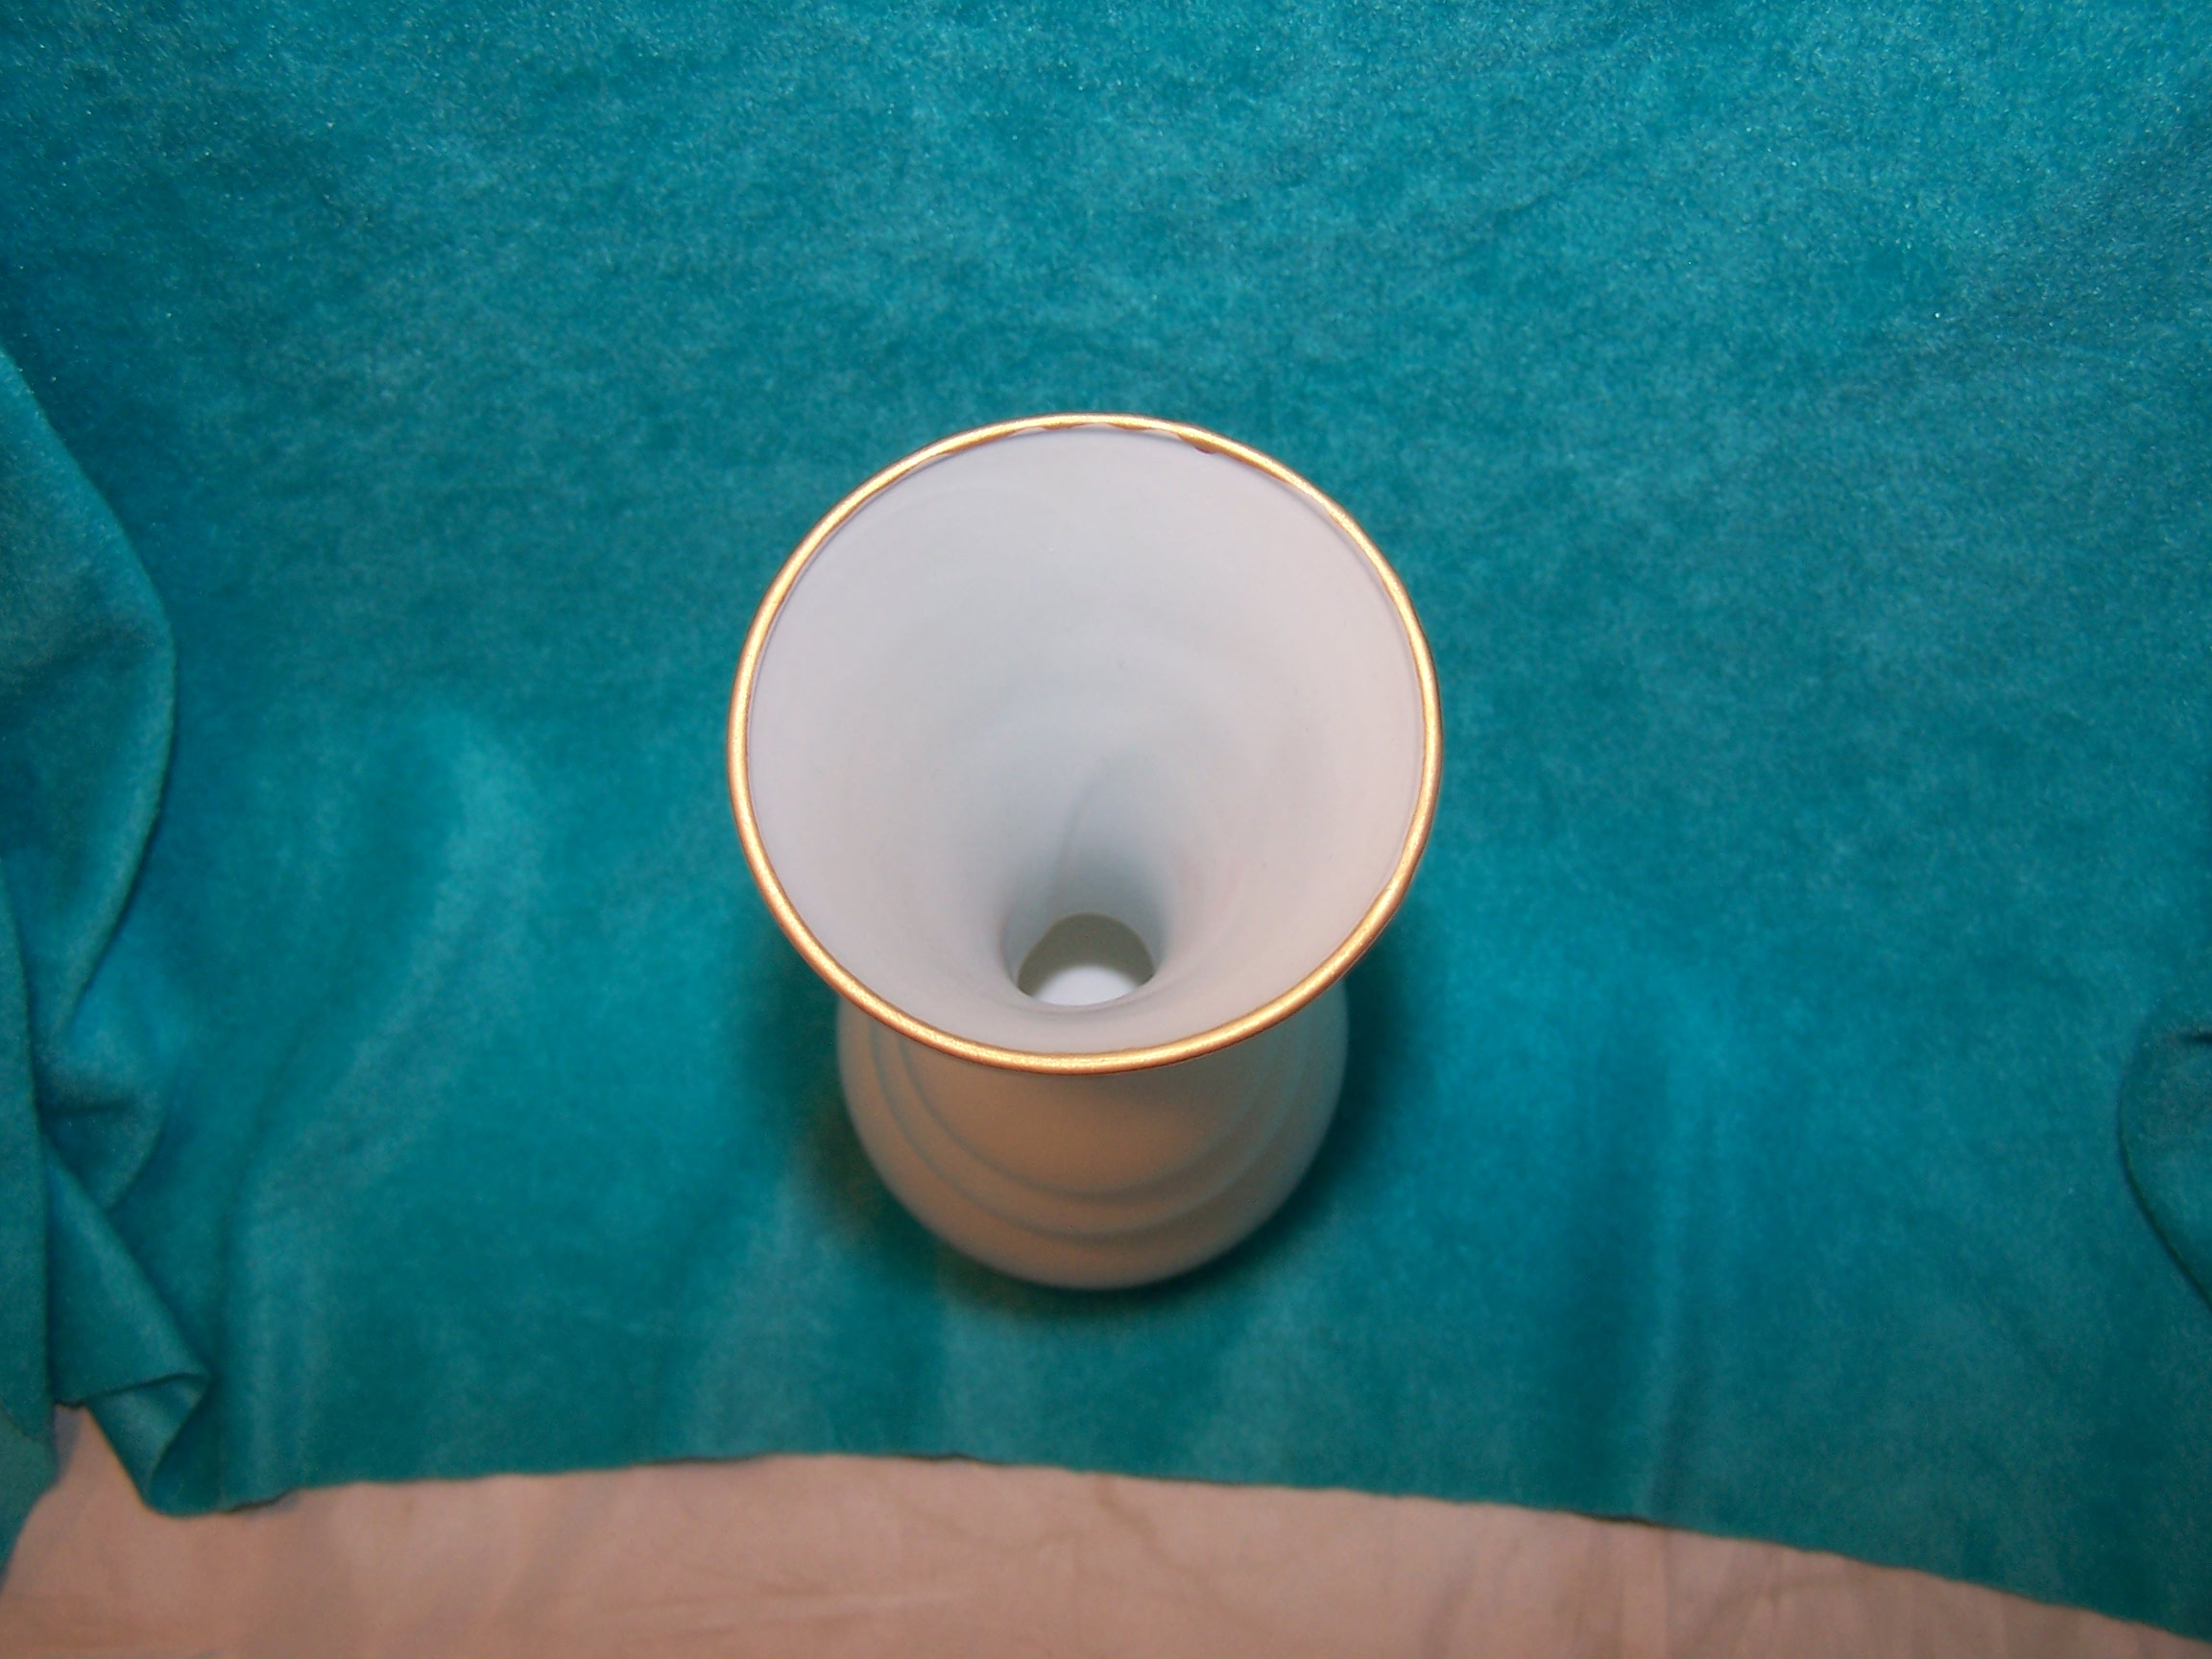 Image 4 of Milk Glass Butterfly Vase, Italian Satin Glass